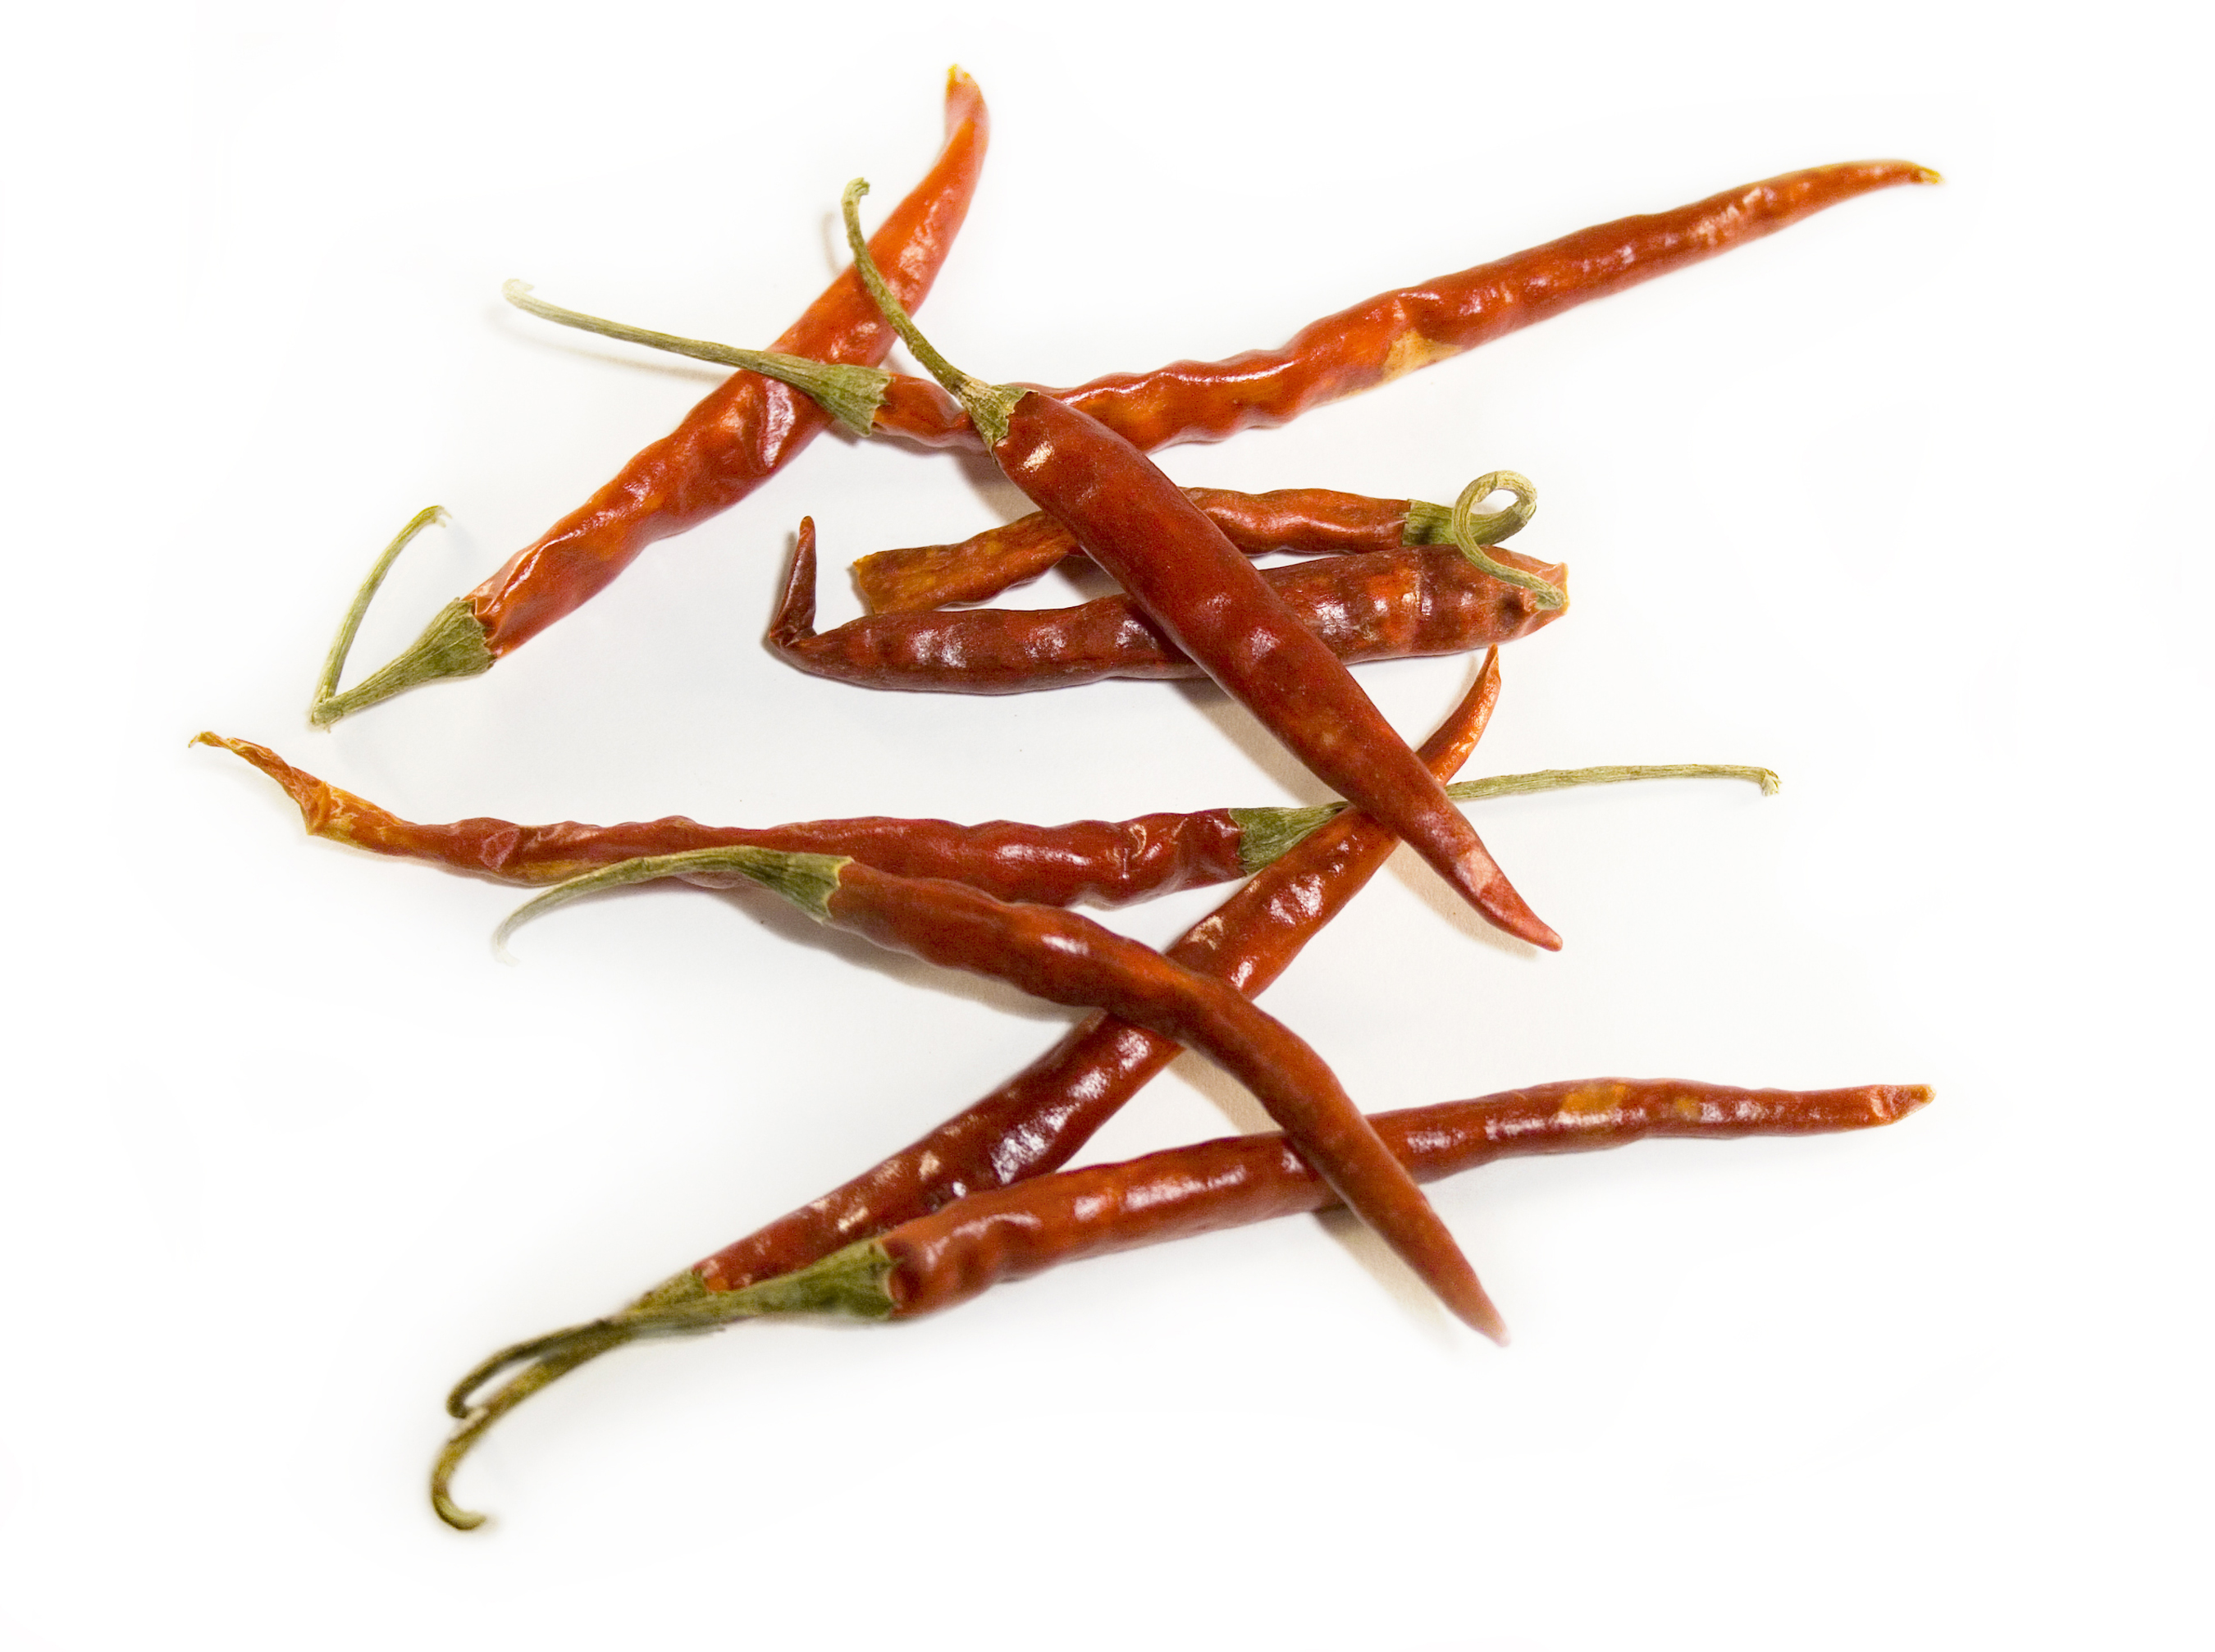 Dried De Arbol Peppers Image